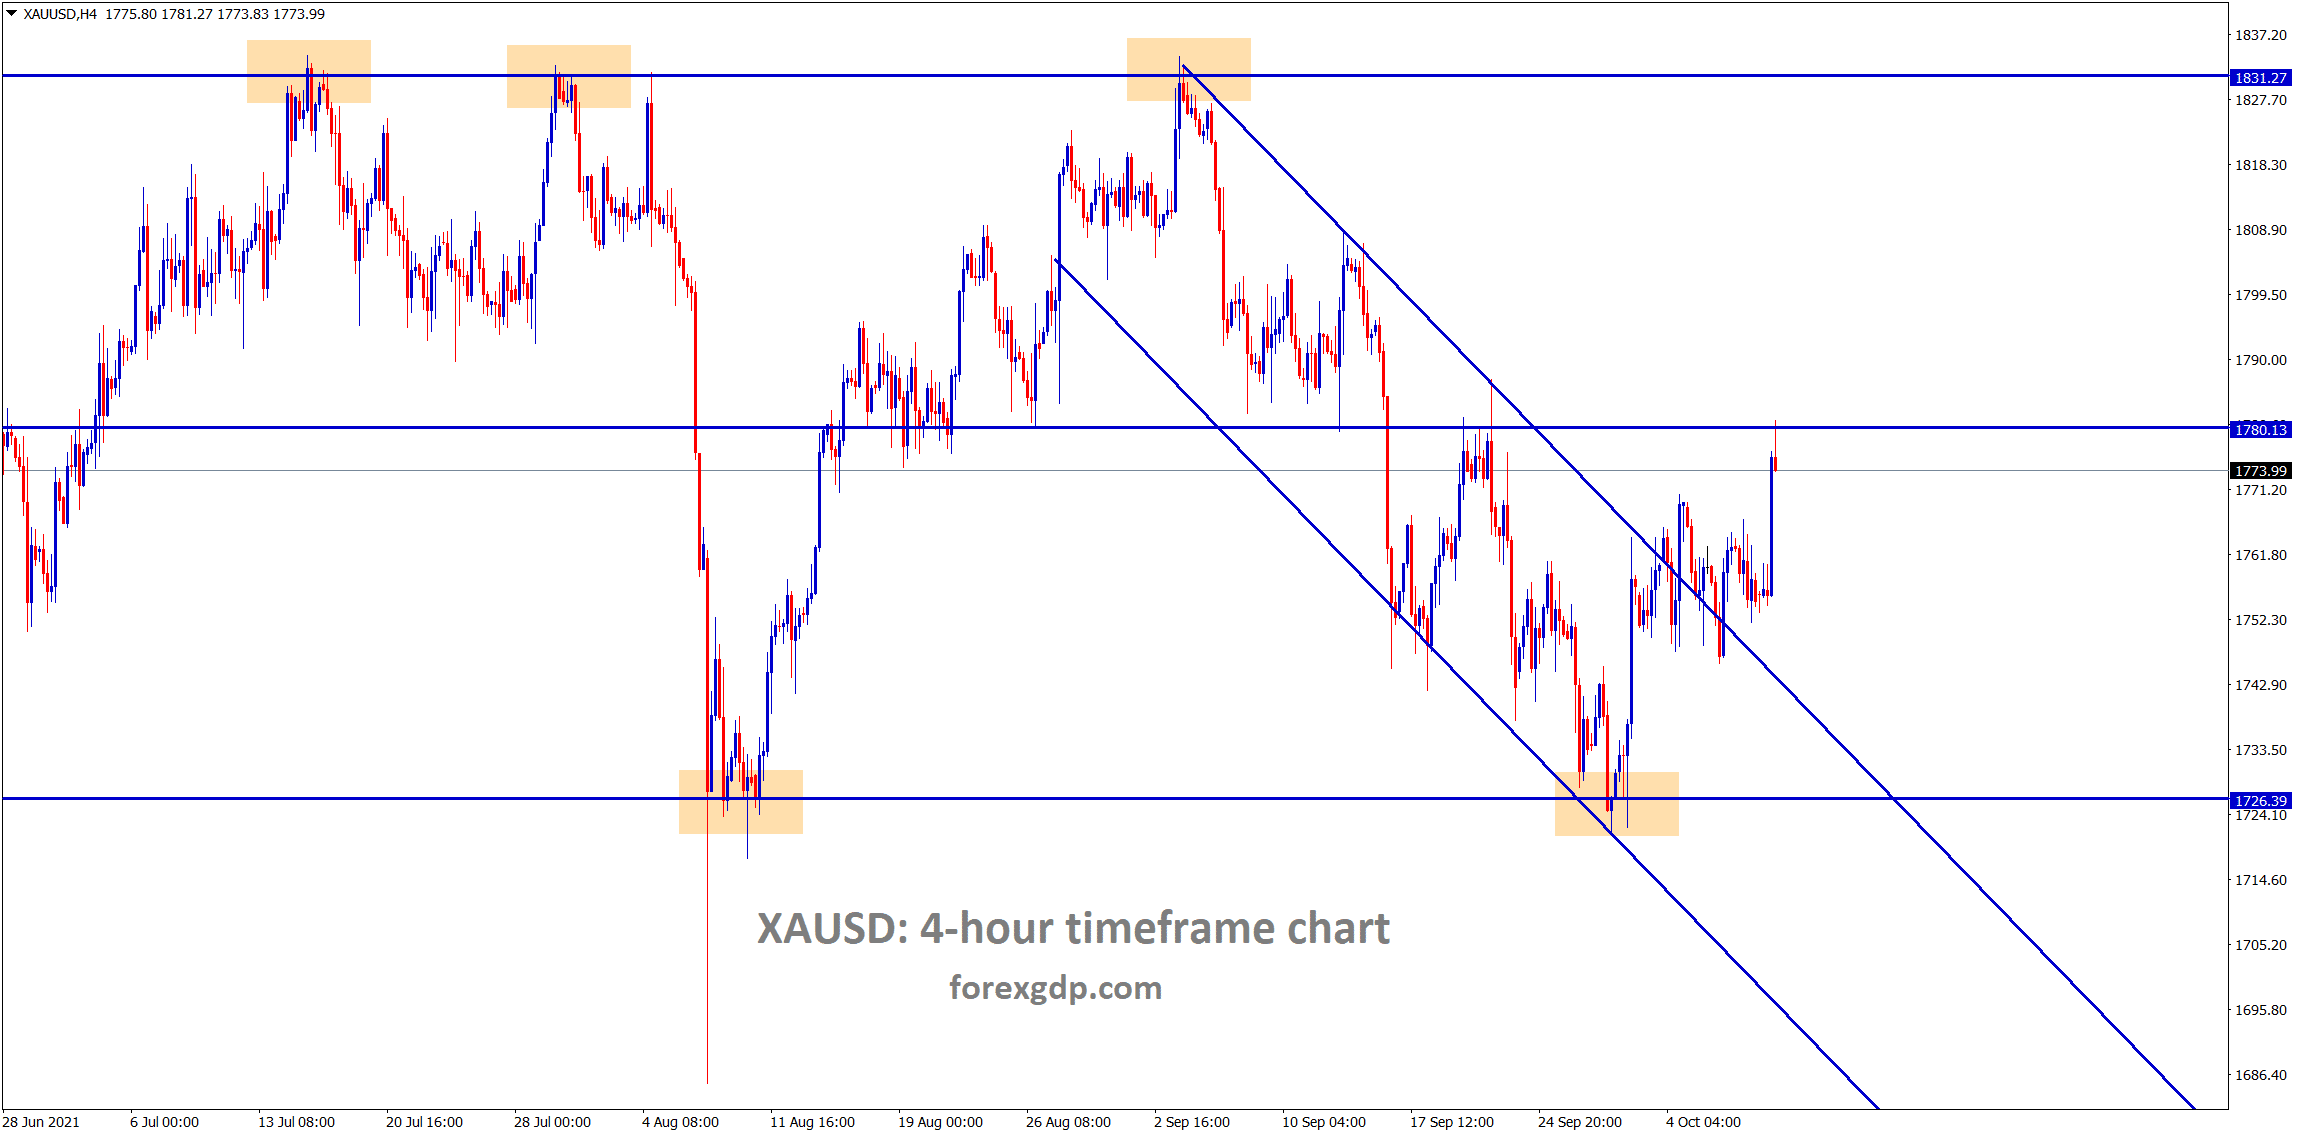 Gold XAUUSD has broken the top of the descending channel and the consolidation zone now the market has reached the horizontal resistance area